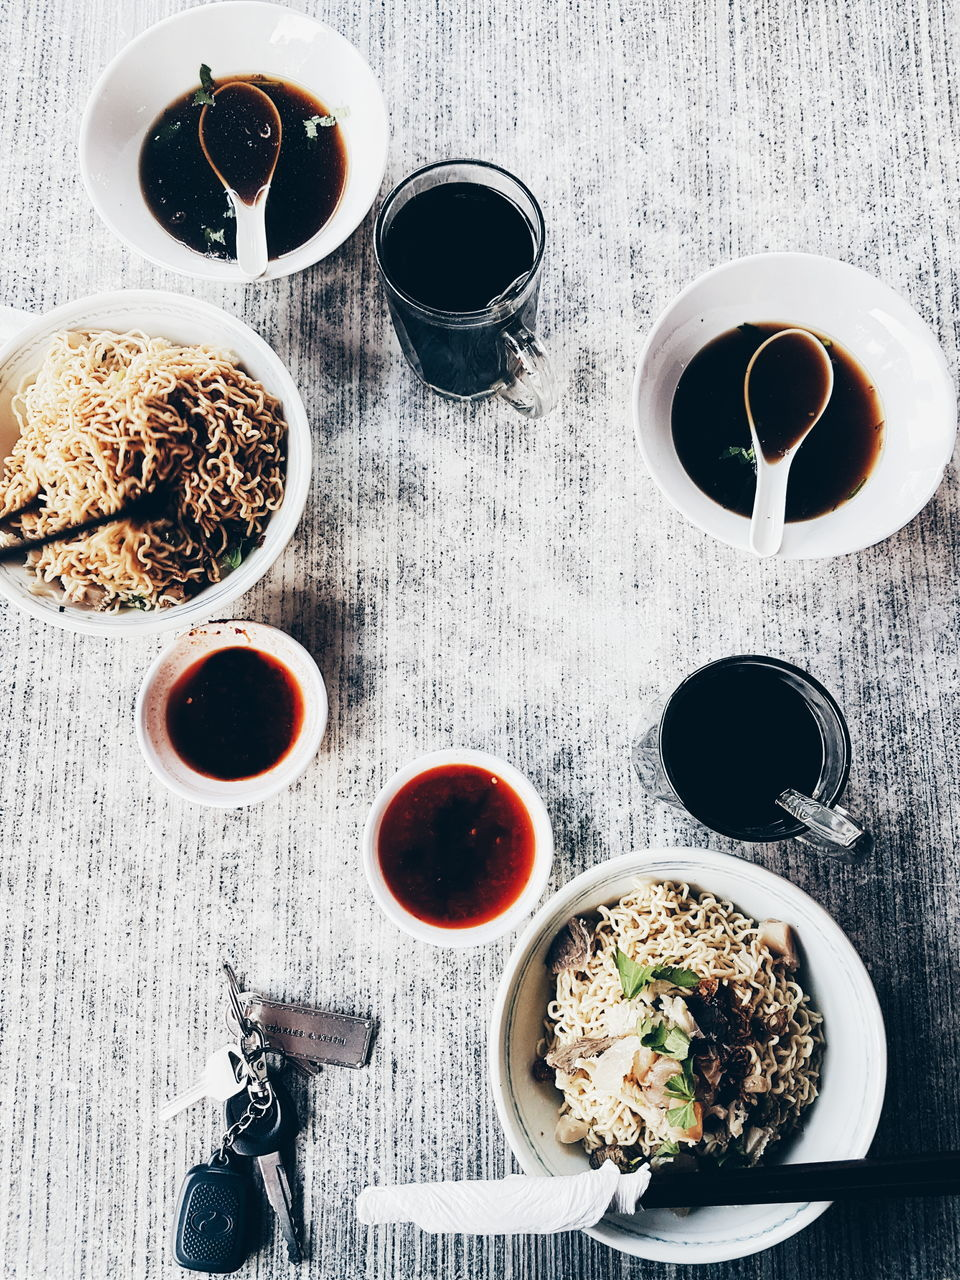 drink, food and drink, table, coffee cup, coffee - drink, refreshment, directly above, freshness, bowl, high angle view, indoors, no people, food, breakfast, ready-to-eat, tea - hot drink, healthy eating, day, close-up